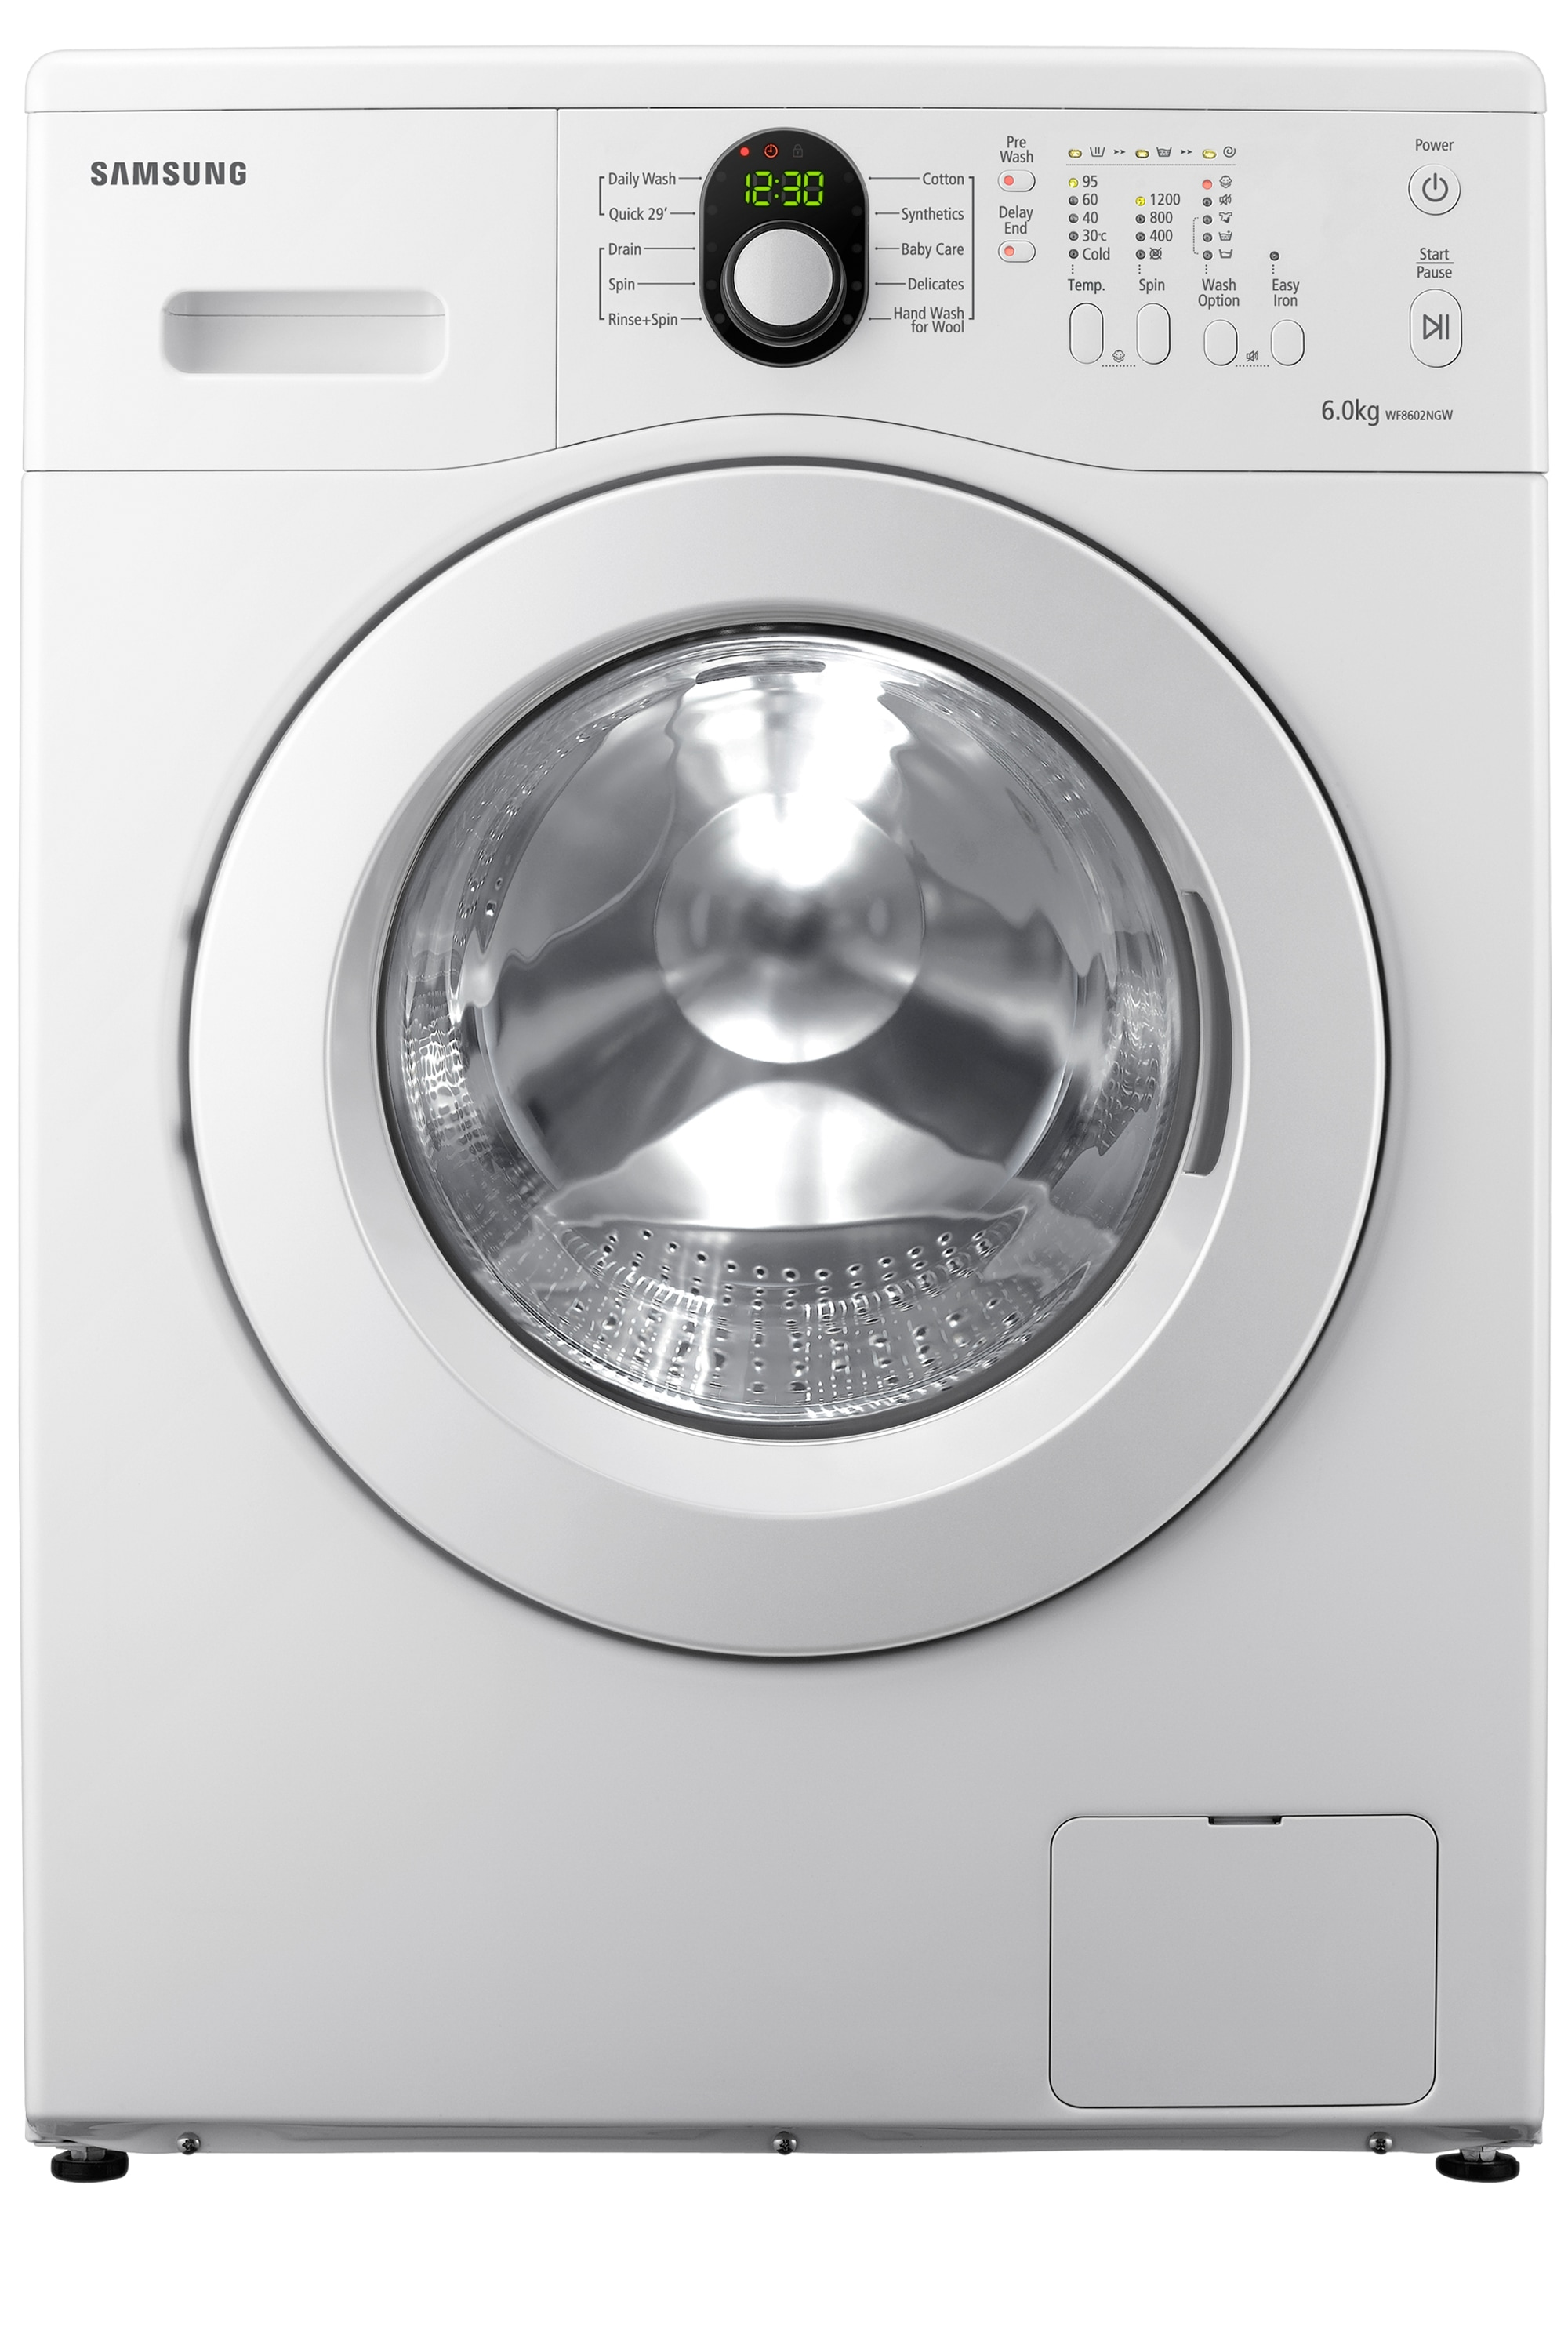 Wf8602ngw 6kg Diamond Washing Machine Samsung Ireland